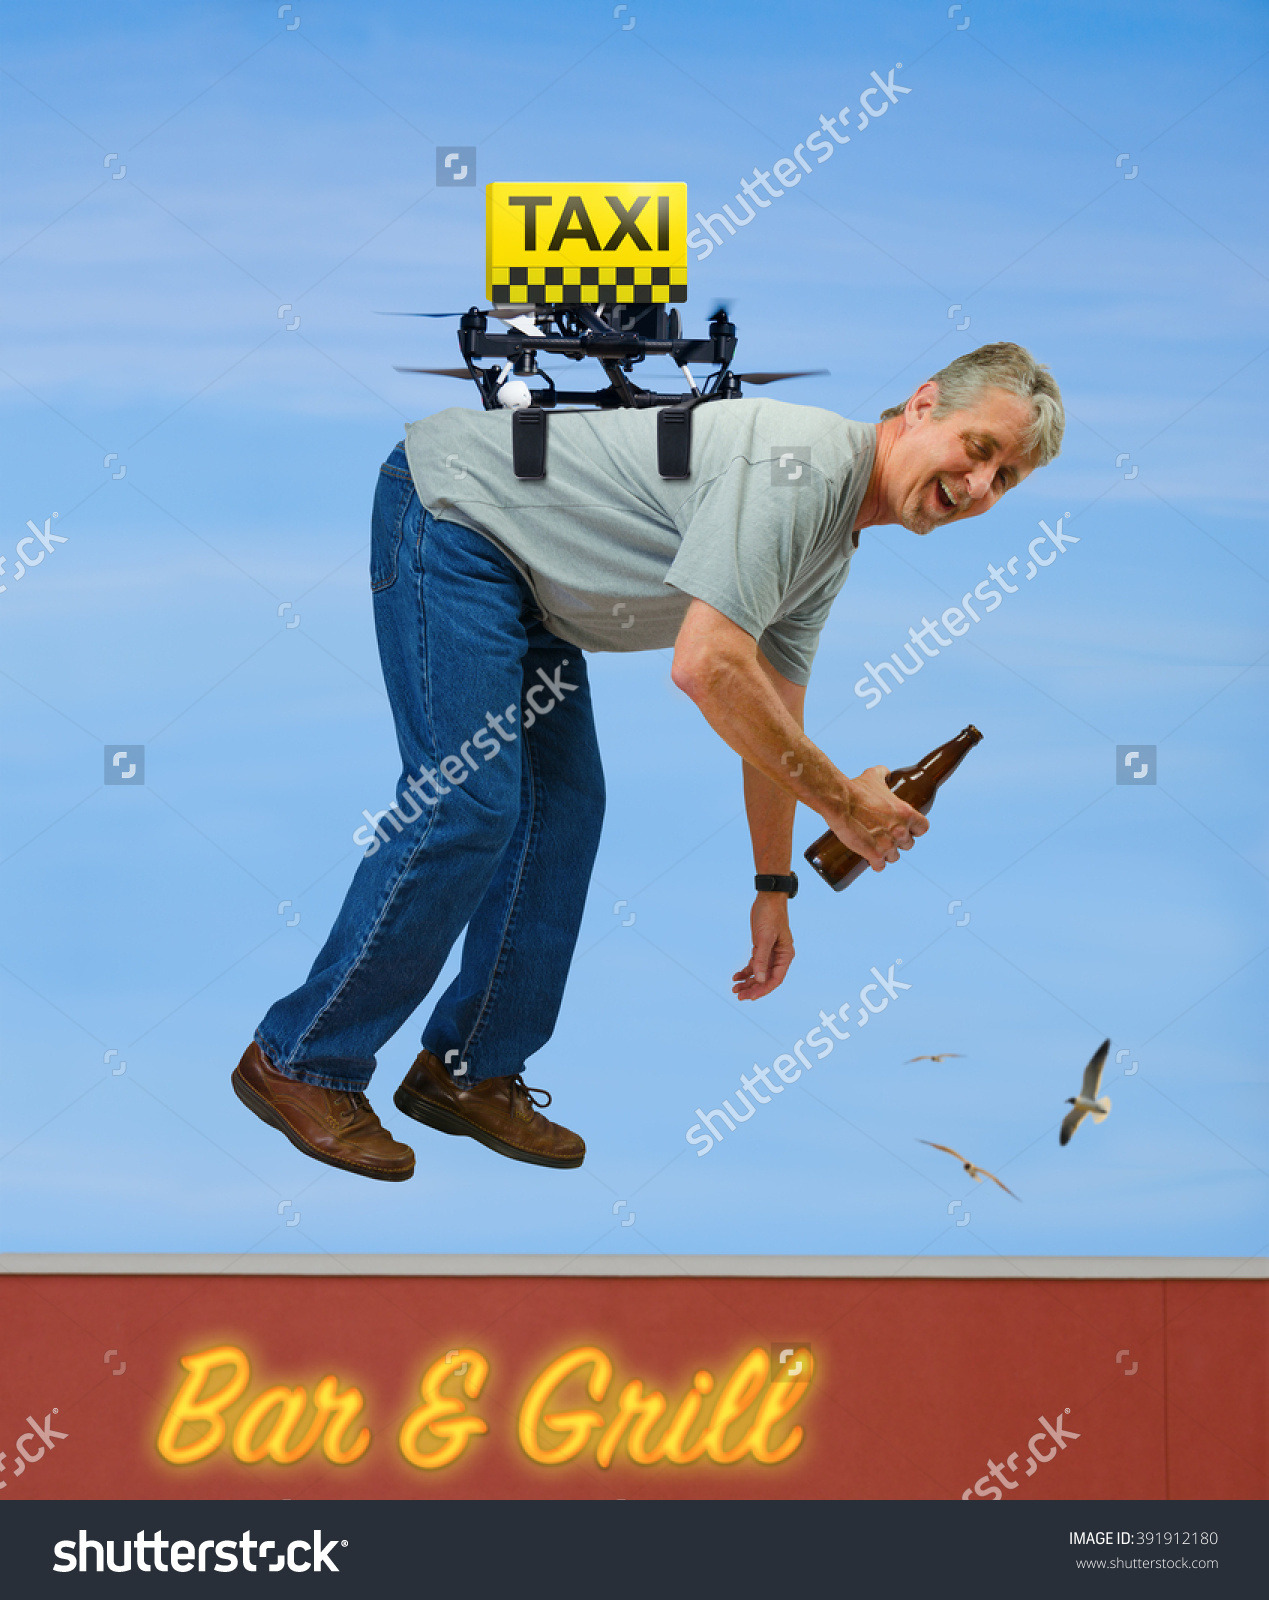 Passenger Drone Anyone?-stock-photo-humorous-image-drone-taxi-flying-through-air-carrying-drunk-man-over-ba.jpg